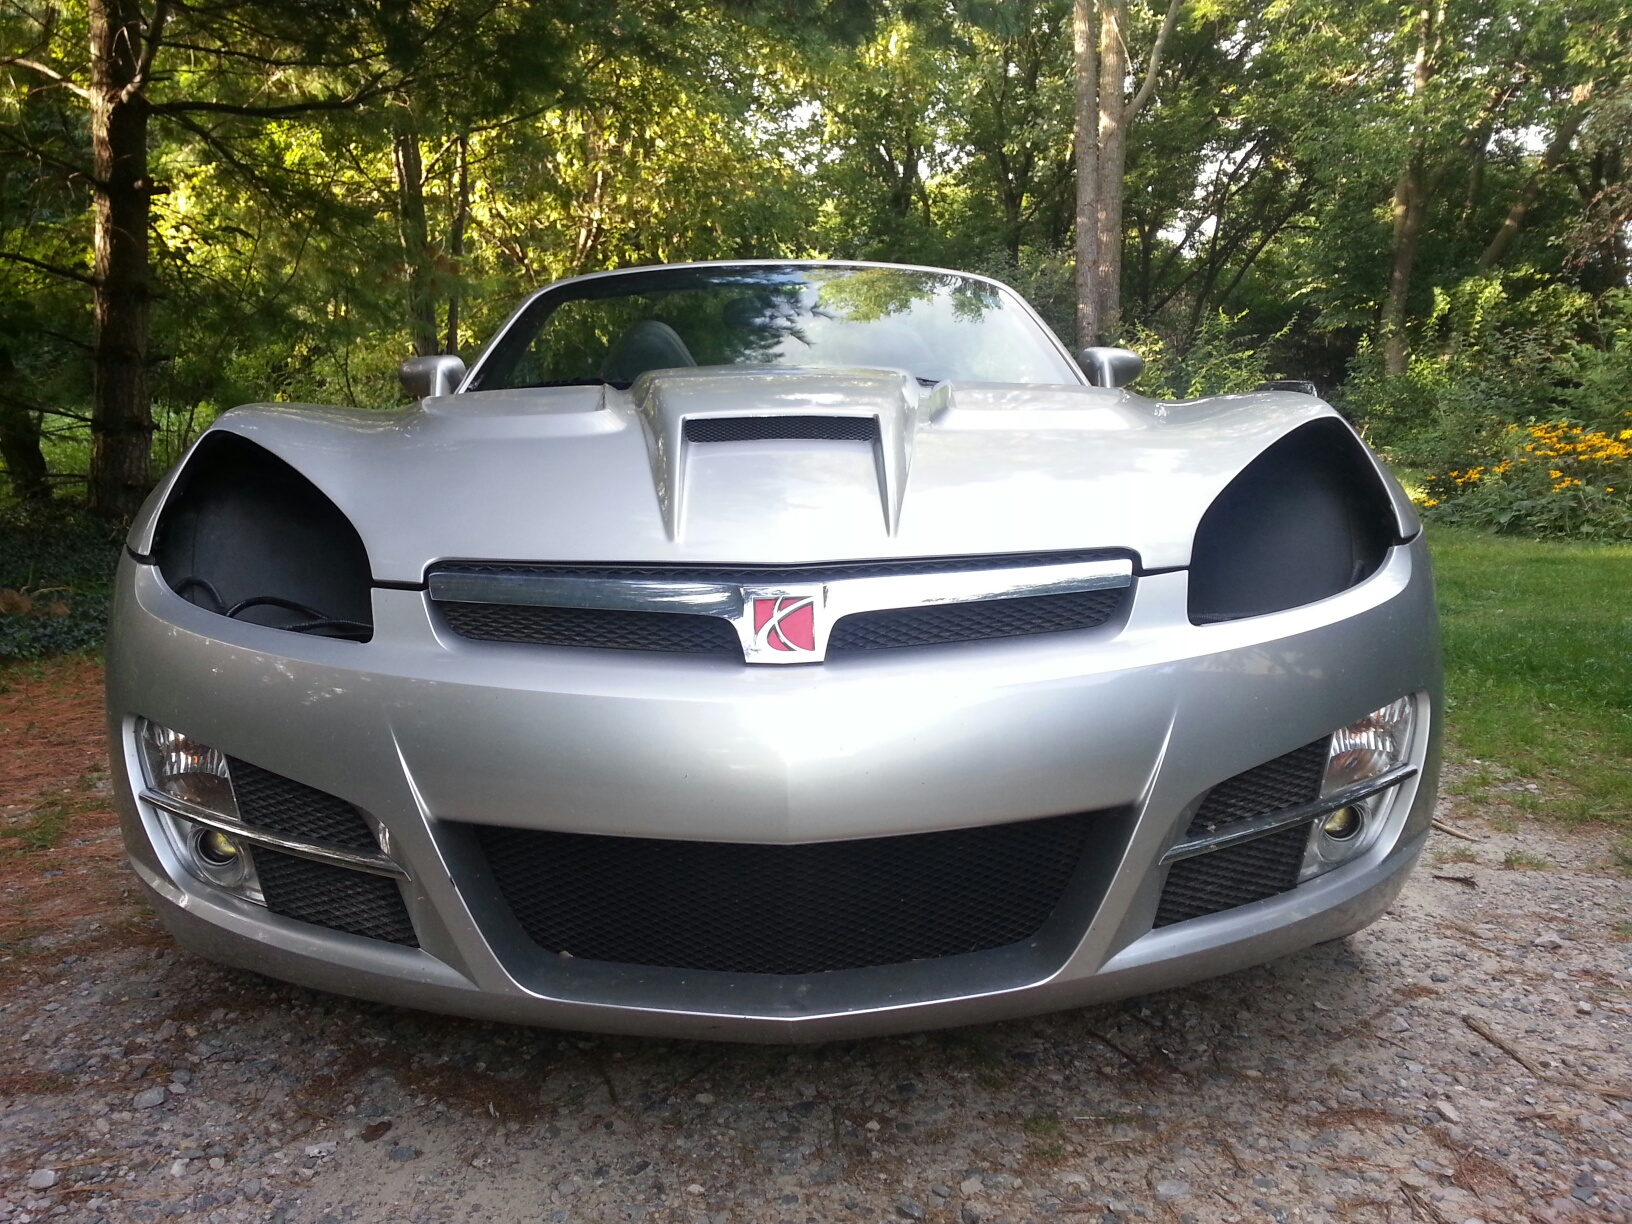 watch more like saturn sky performance upgrades saturn sky le5 2 4 turbo project page 8 saturn sky forums saturn